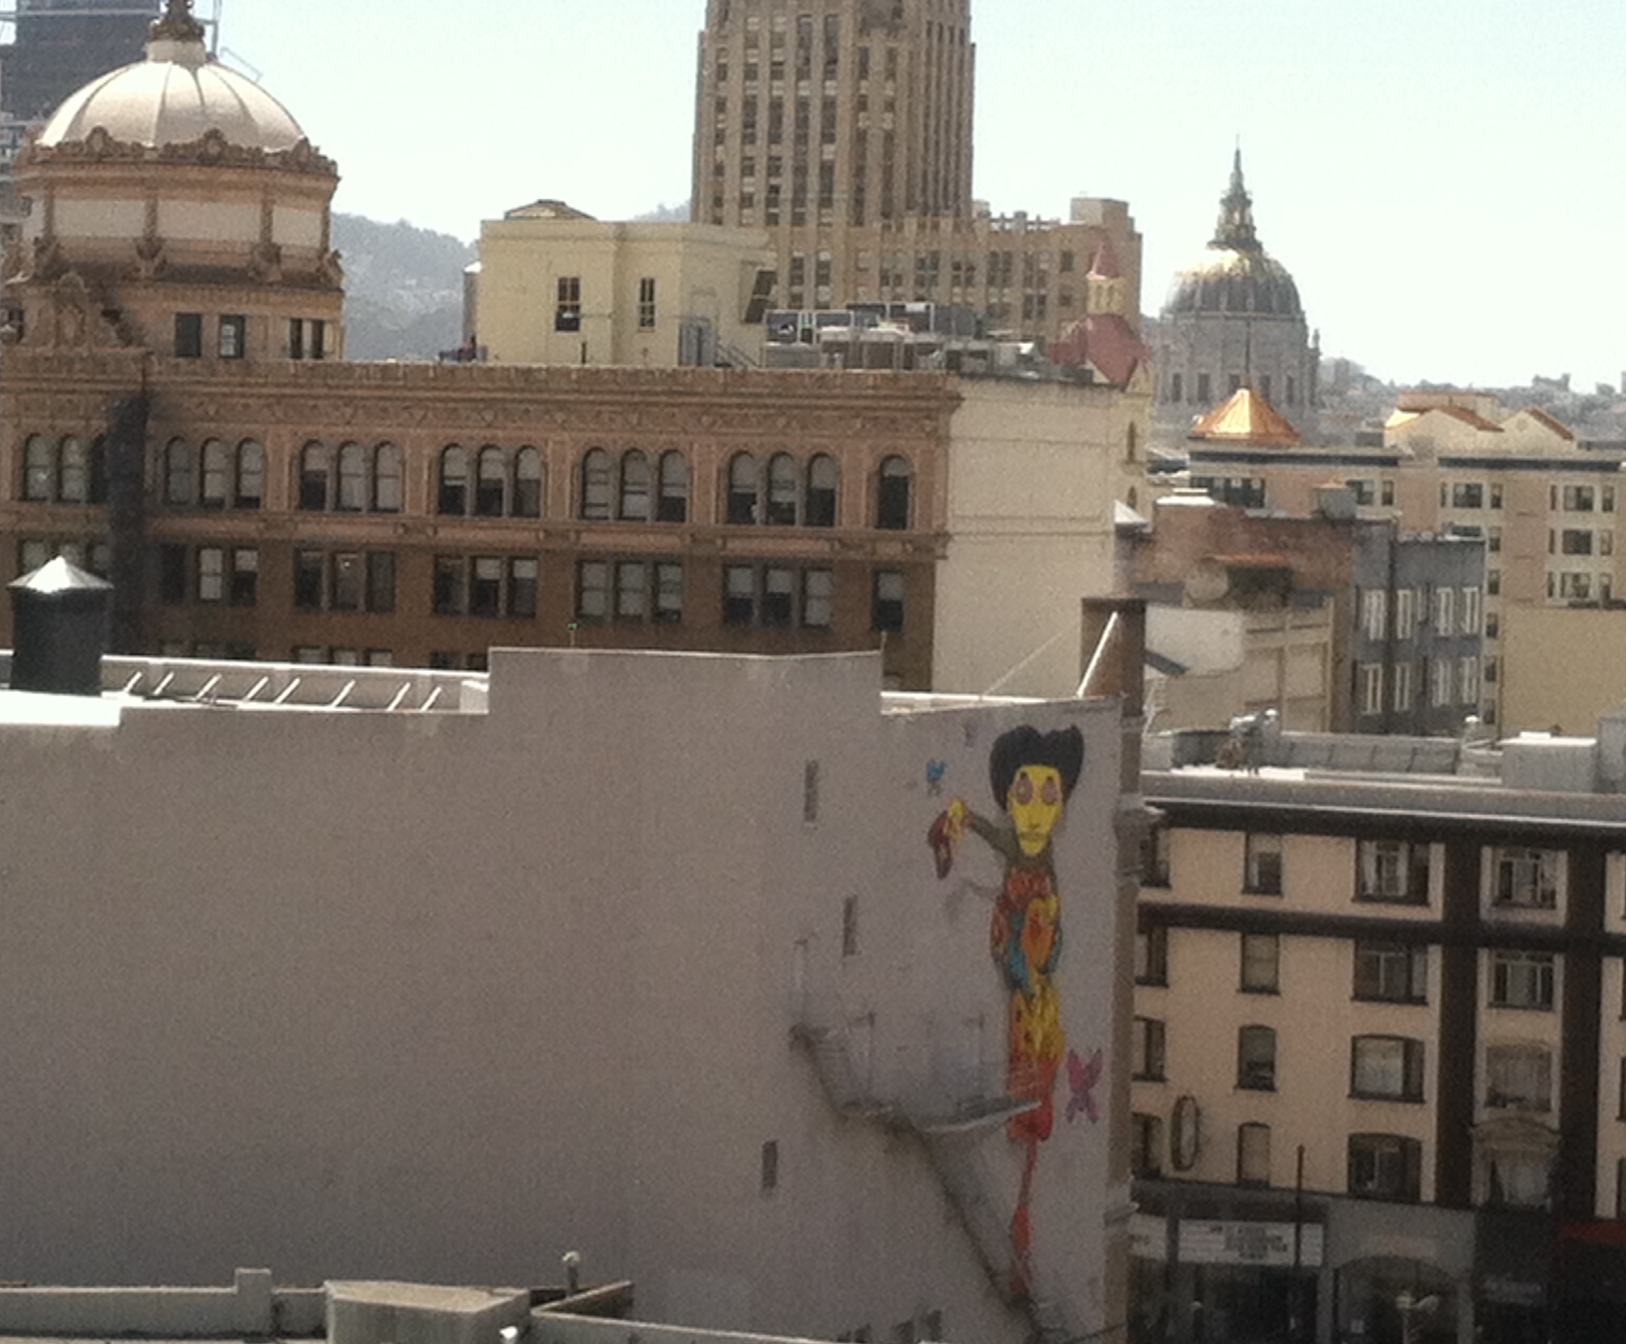 The view from Hack Reactor's classroom window.